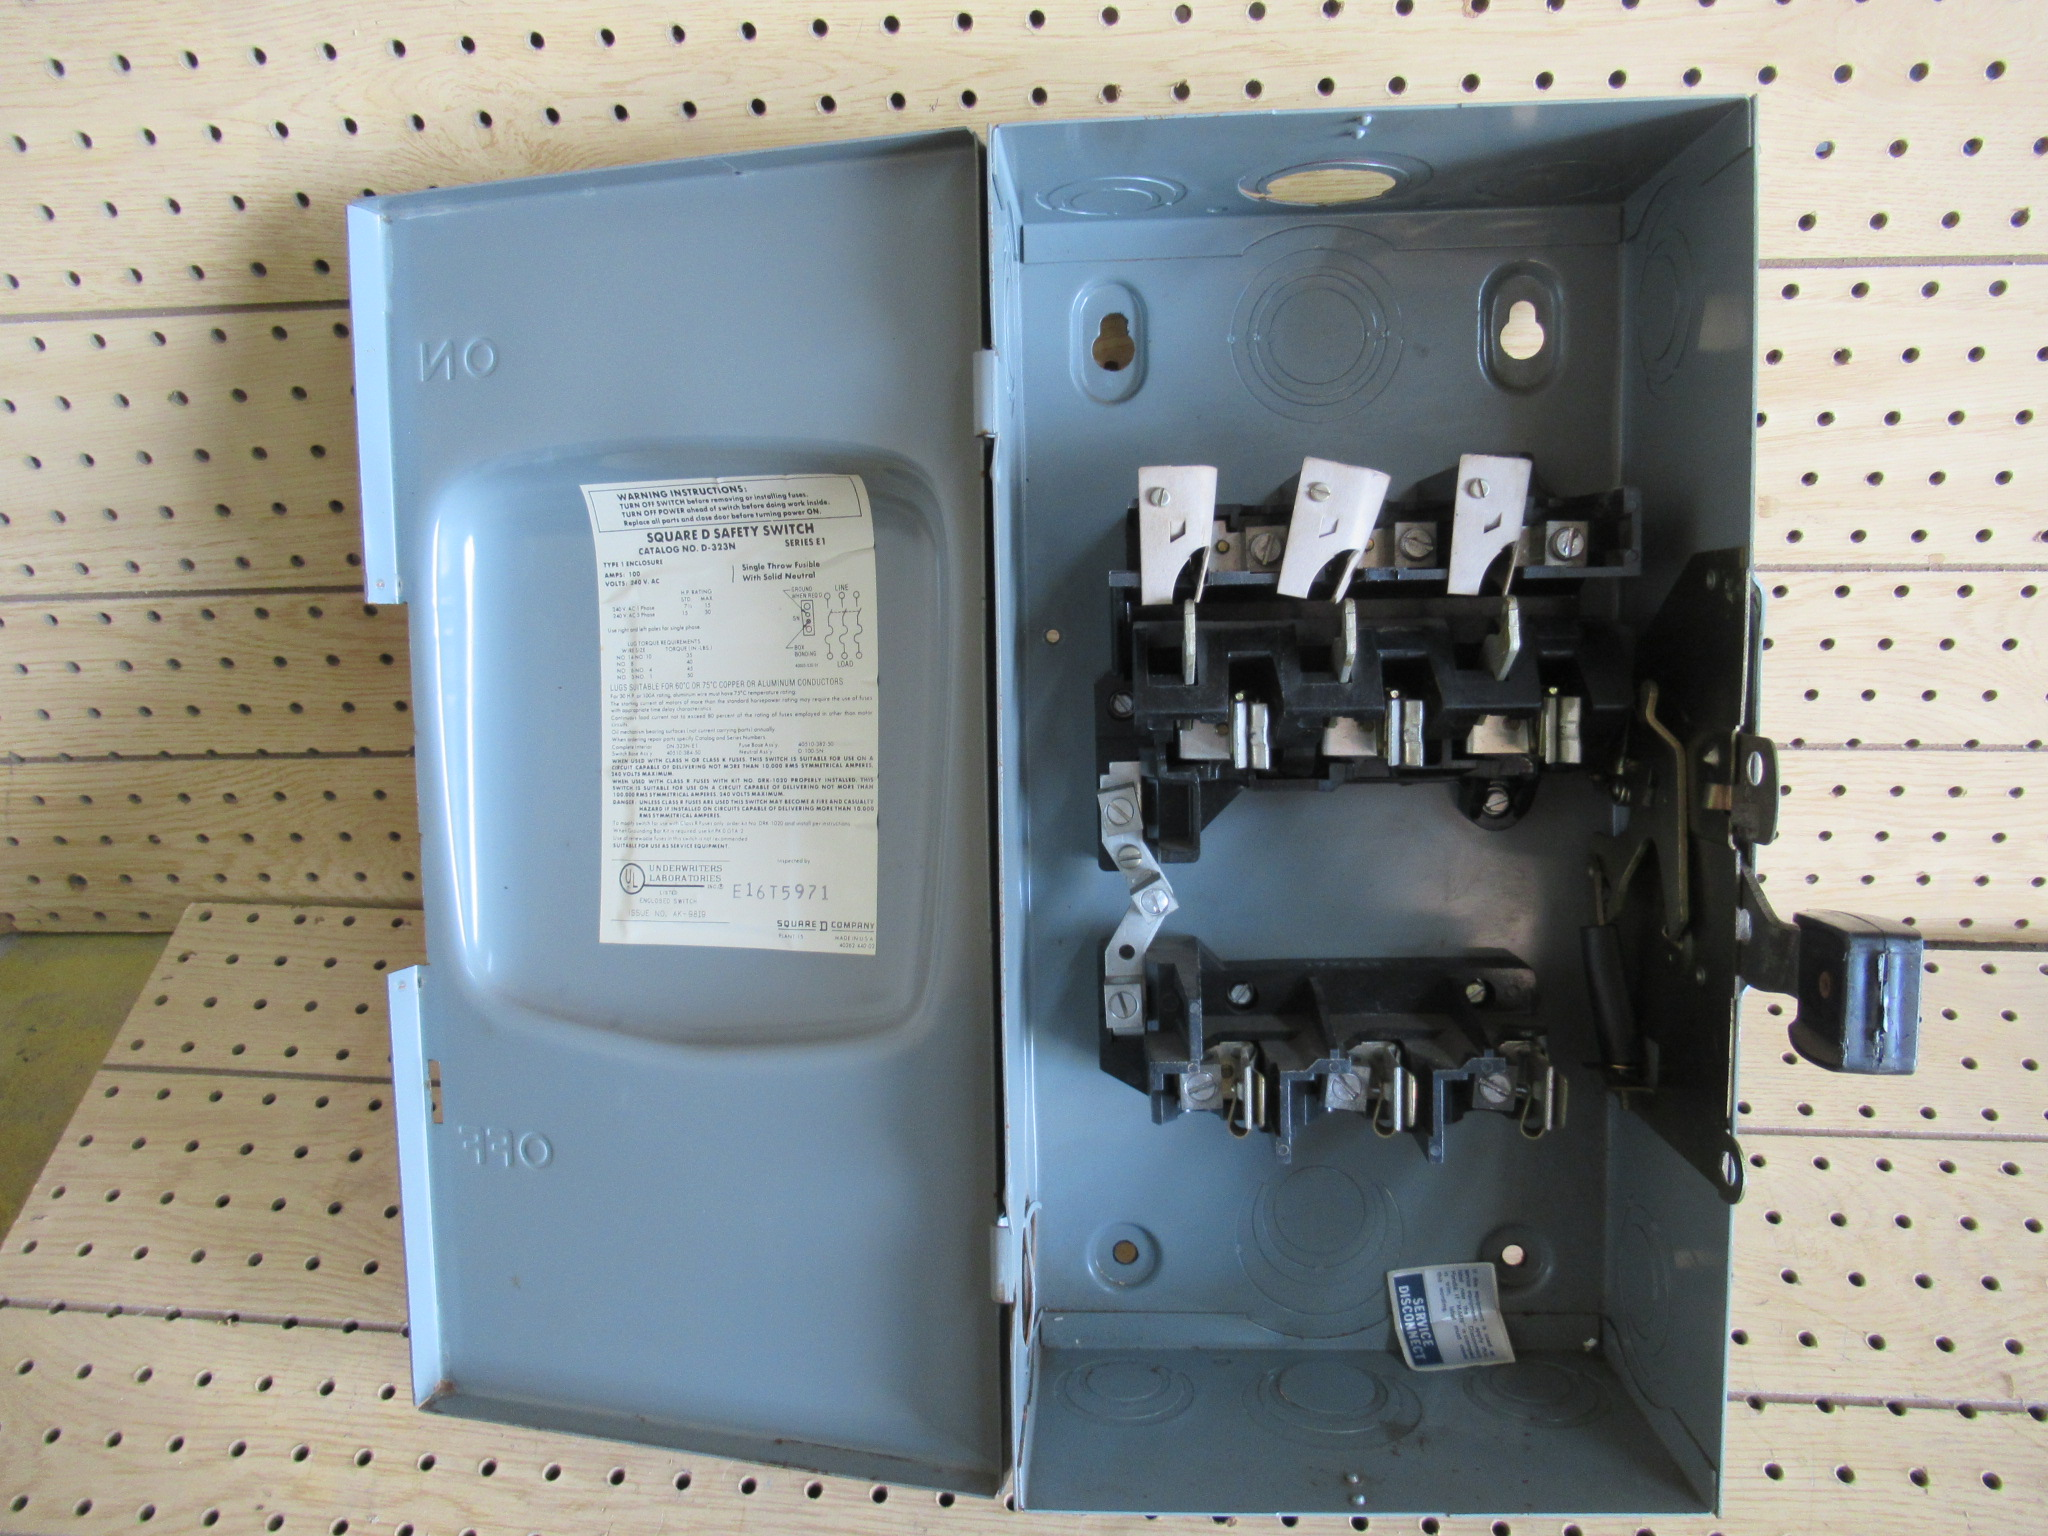 100 Amp Disconnect >> 100 Amp 3 Phase 240 Vac Square D Fusible Safety Switch Disconnect